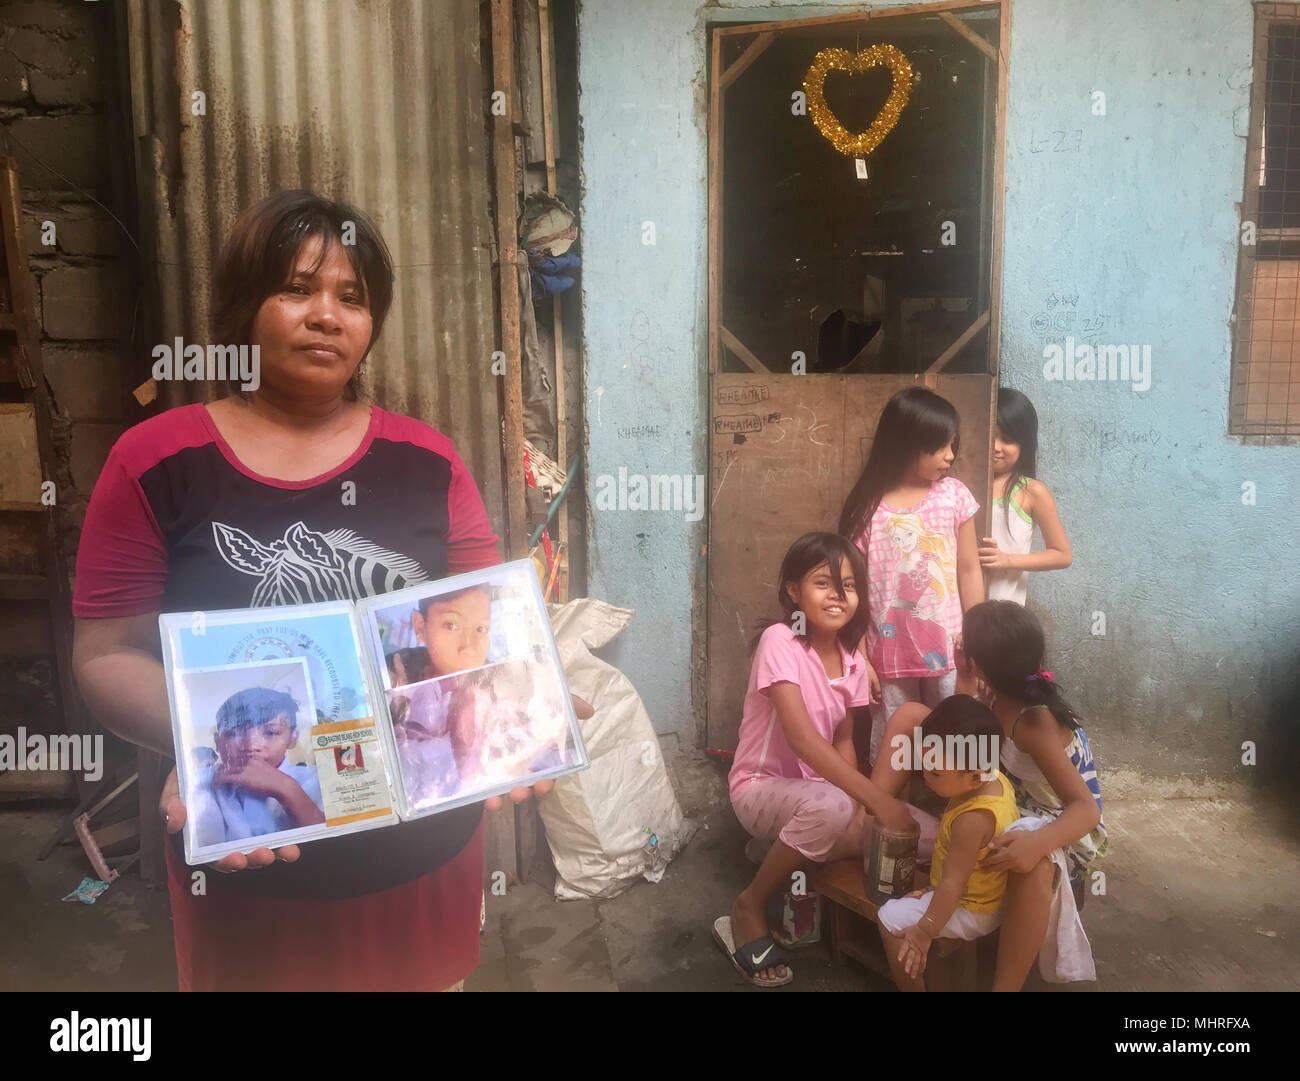 19 April 2018, Philippines, Manila: The Filipino Emily Soriano showing photos in front of her house in Bagong Silang of her son who was shot. The 15 year old is one of thousands of victims of the anti-drugs war led by president Rodrigo Duterte. Photo: Christoph Sator/dpa - Stock Image